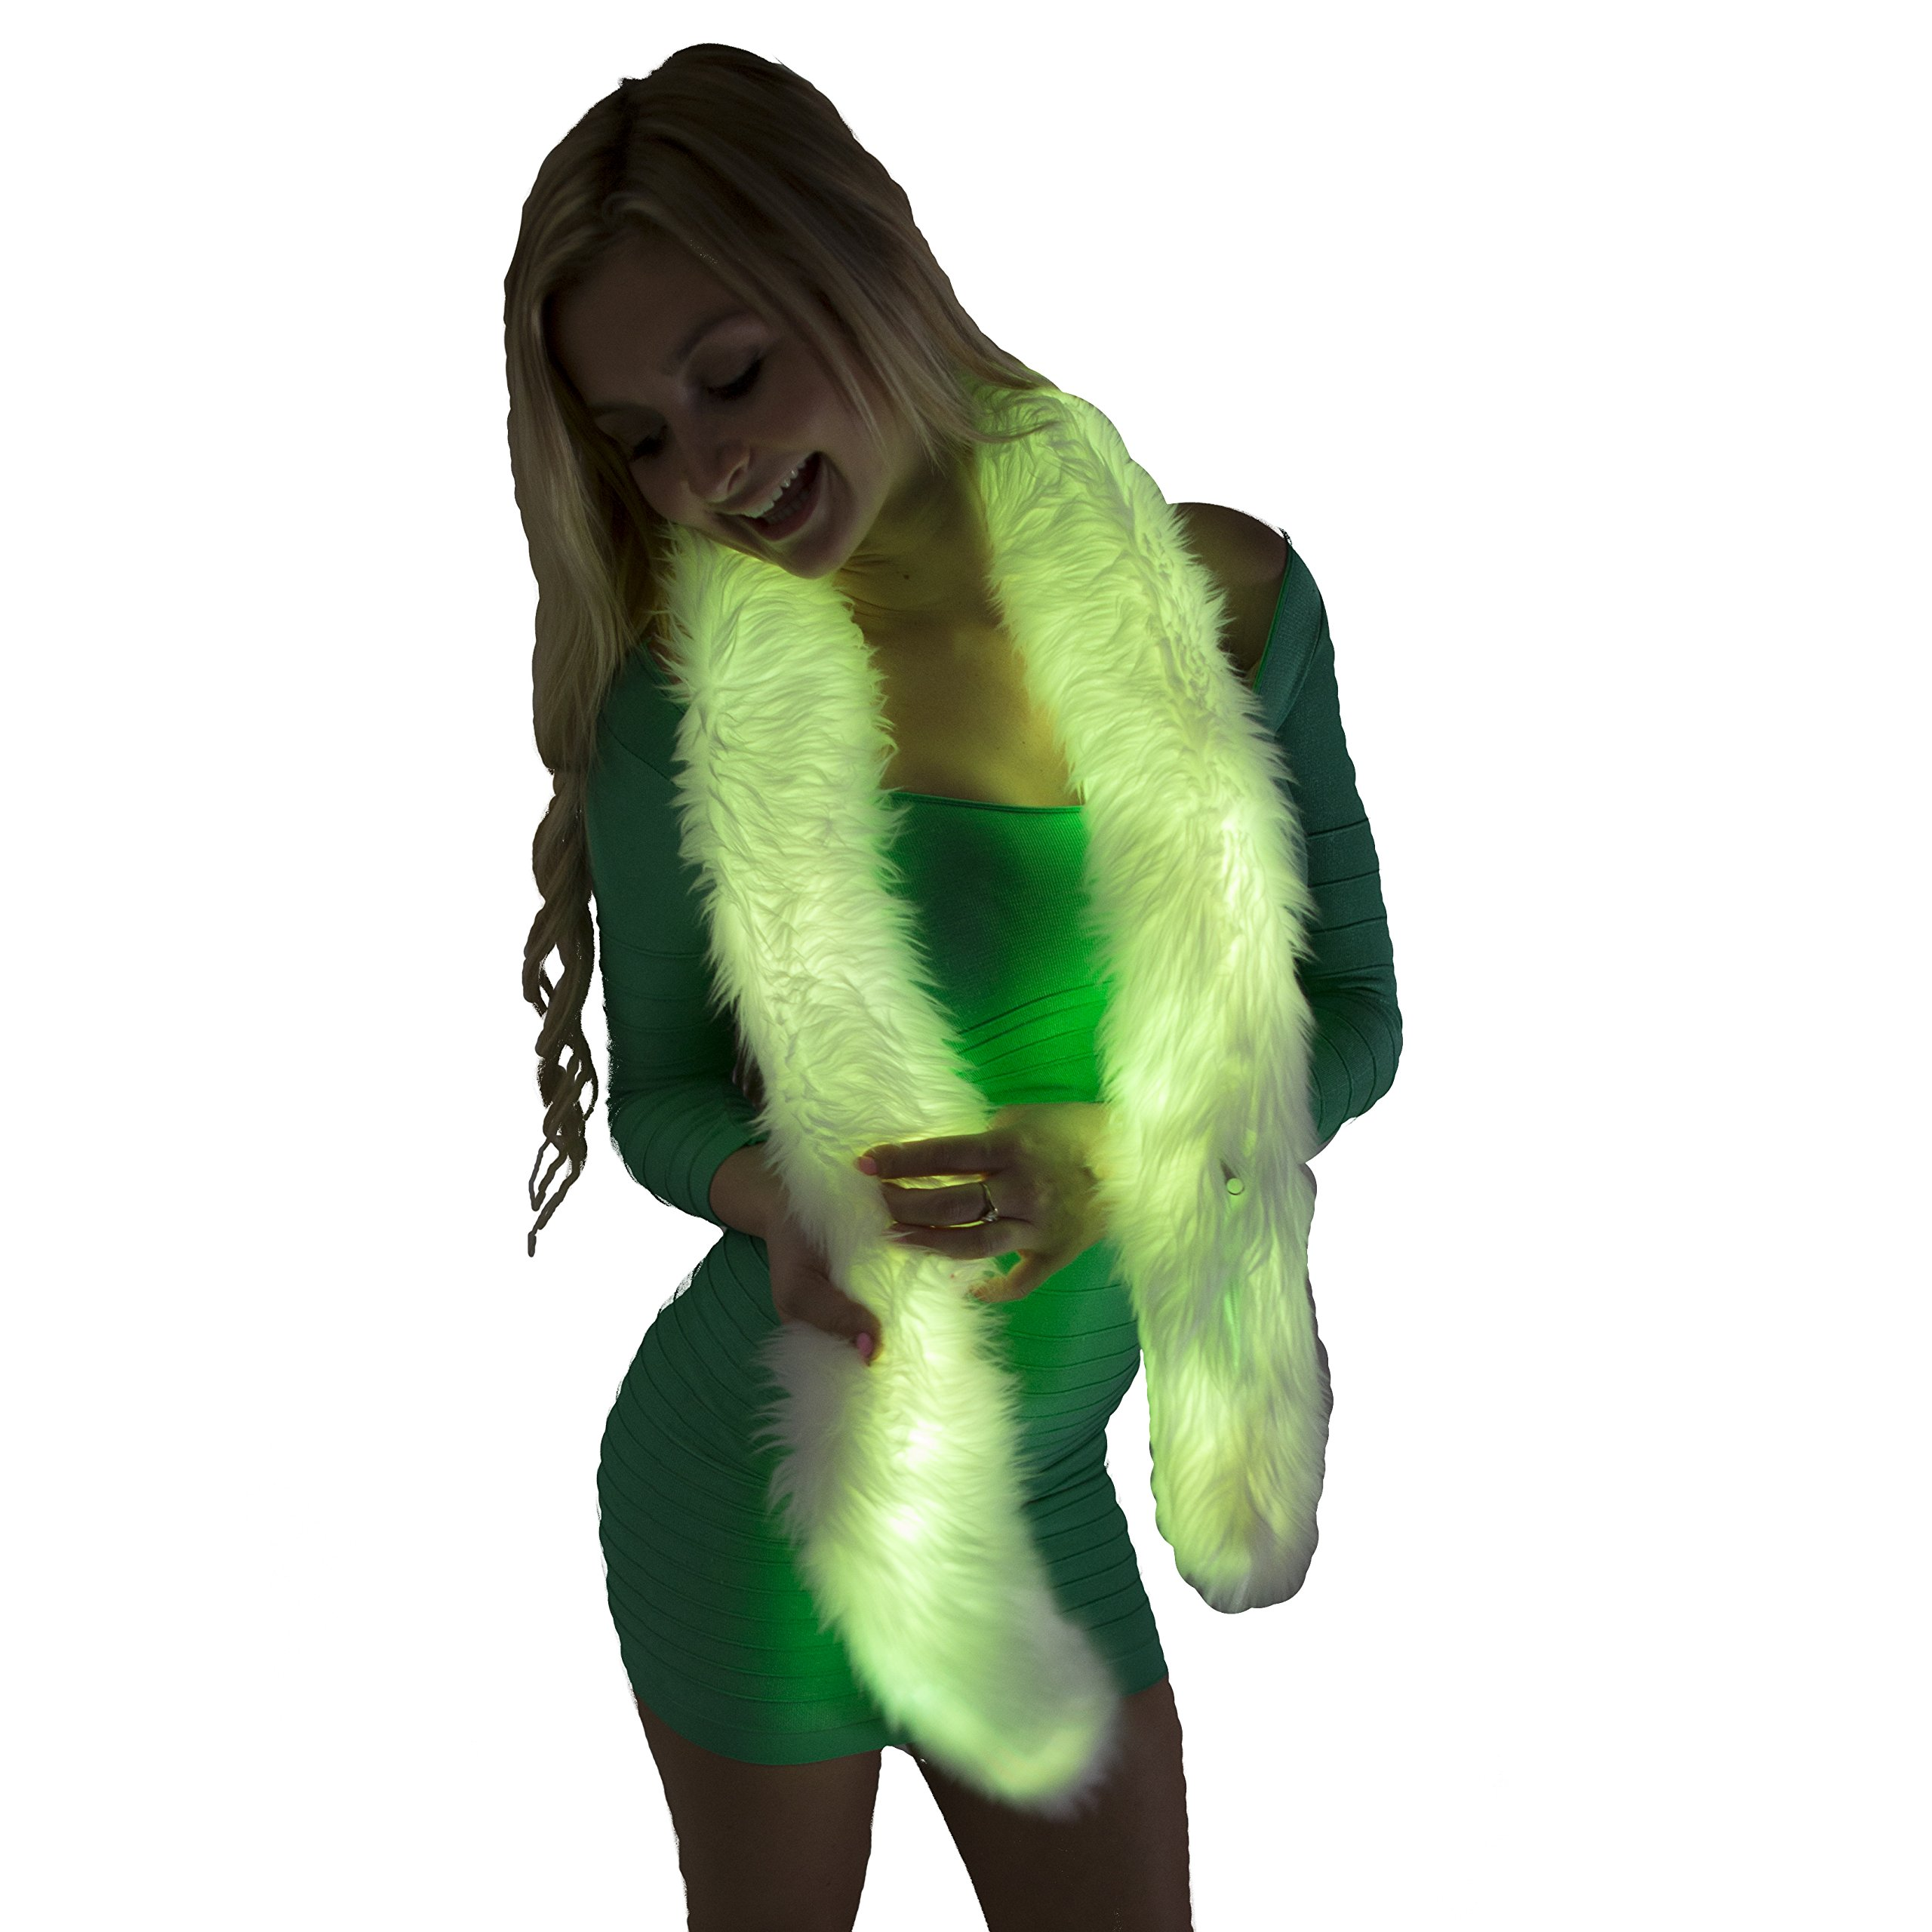 Electric Styles Light Up Fur Boa - All-White Fur with LED Lighting (Color Changing)